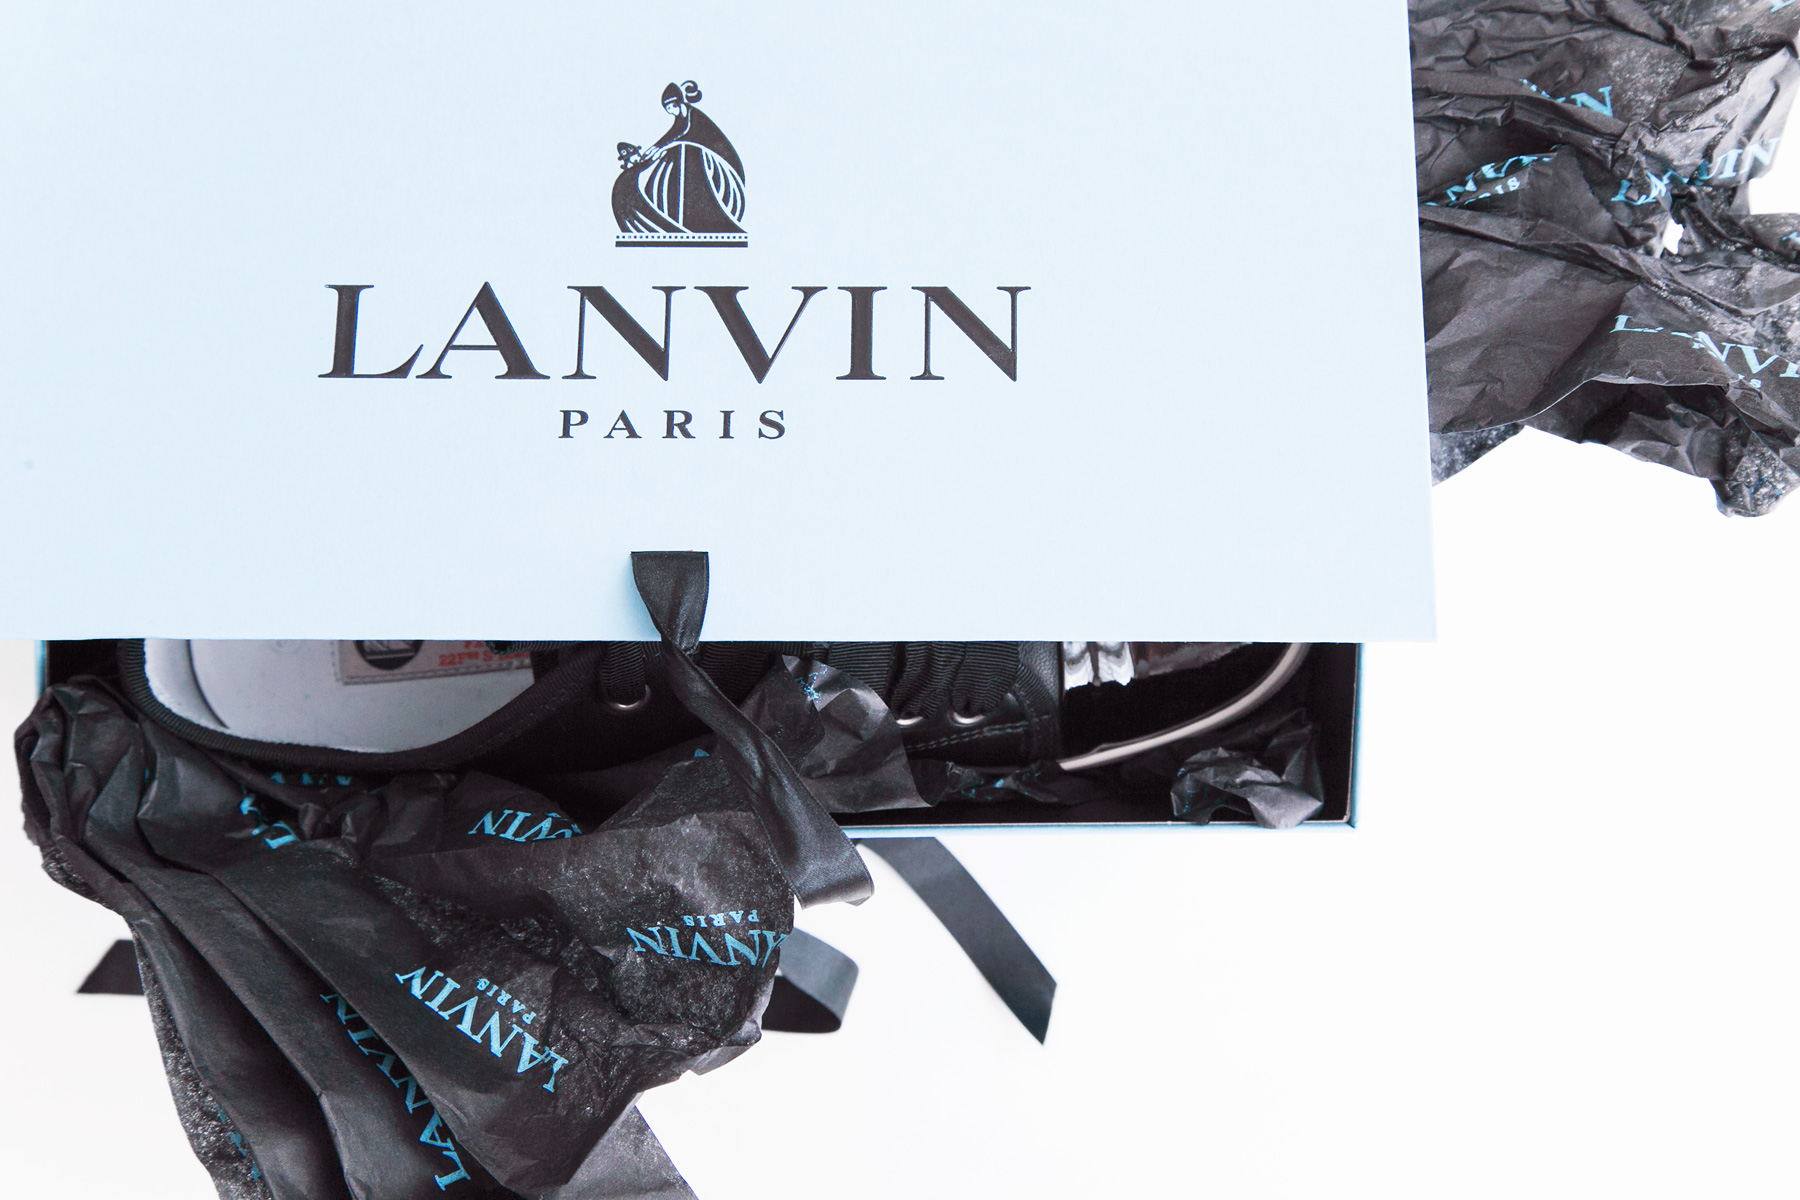 Lanvin sneakers by Carin Olsson (Paris in Four Months)